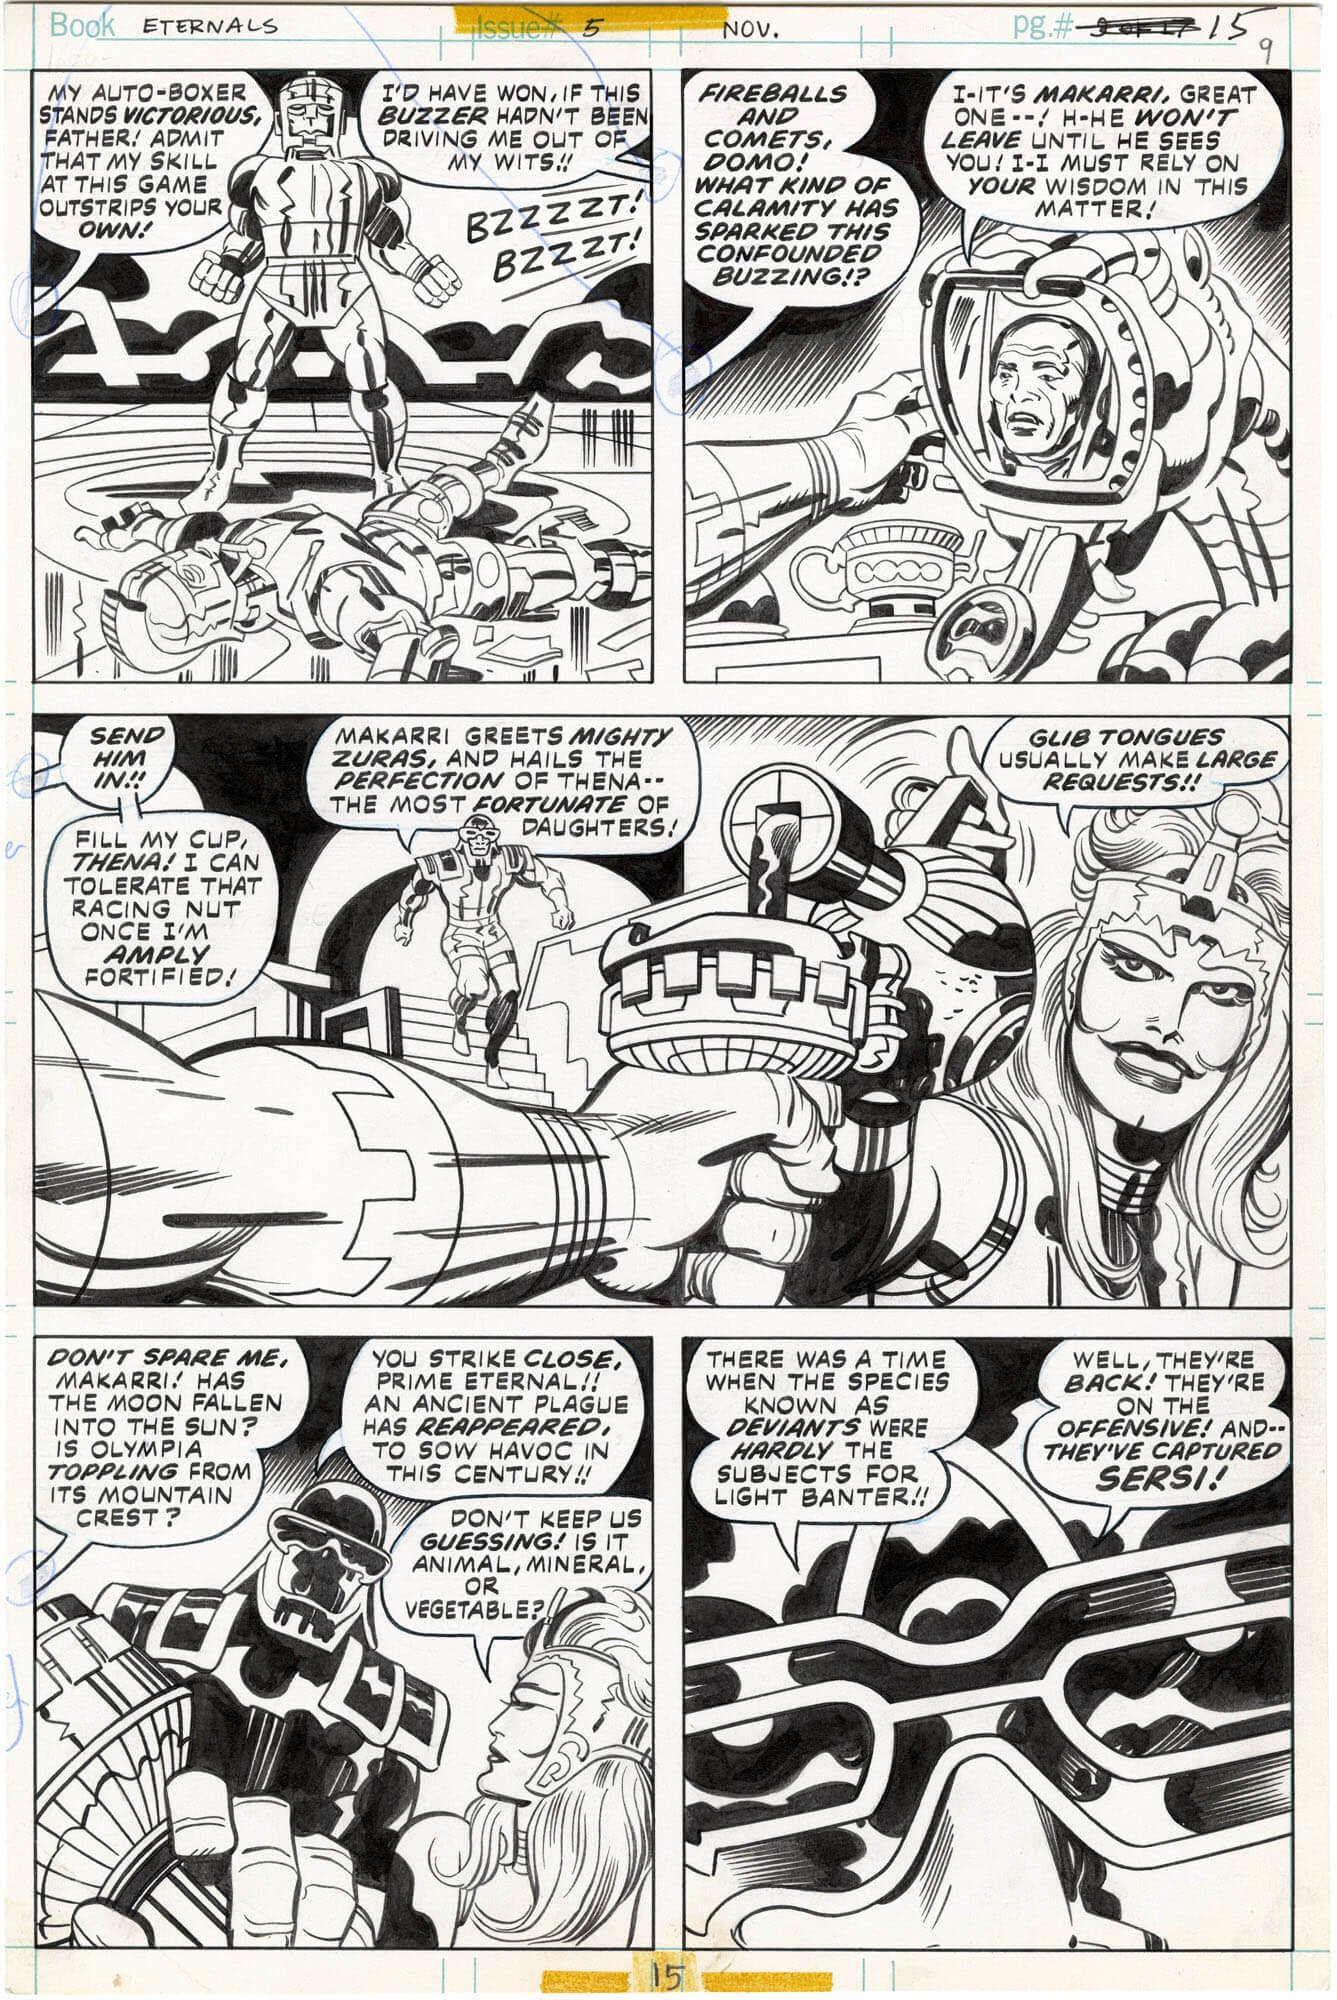 Eternals #5 p15 (First Thena Appearance - Played by Angelina Jolie)